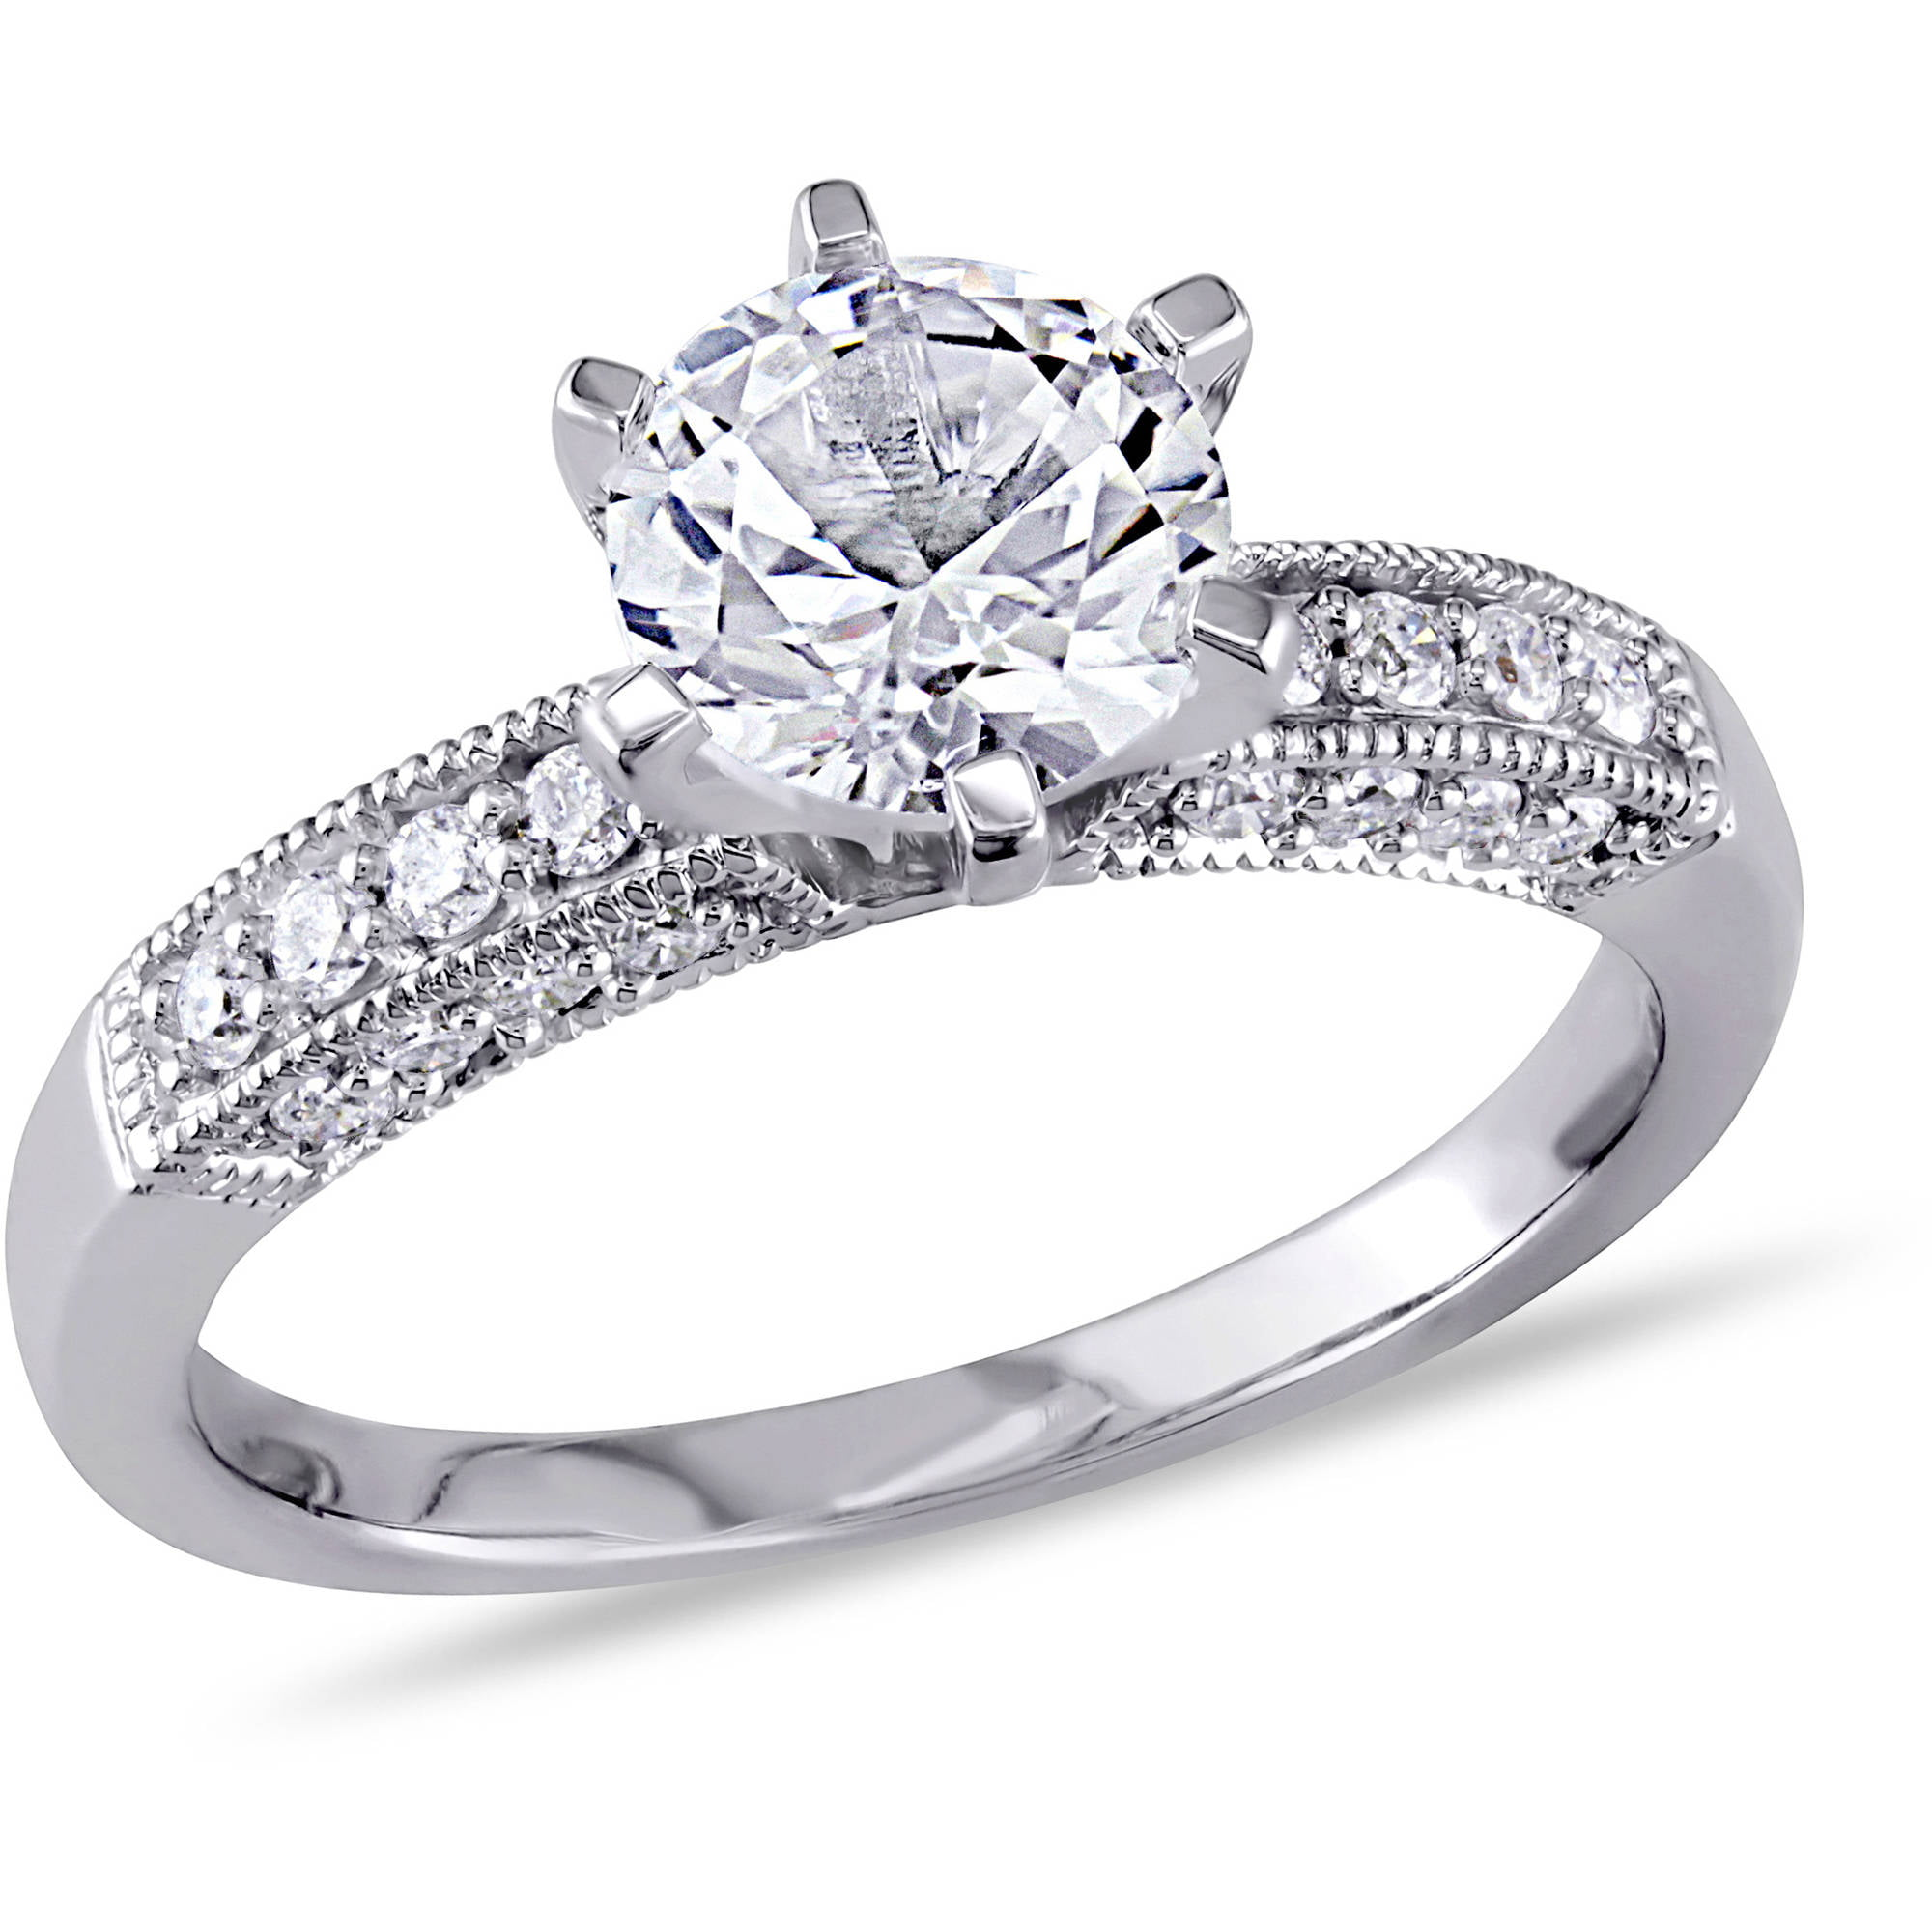 size shape cz ct si halo products collections rings over rhodium original pear carat sterling wedding silver engagement